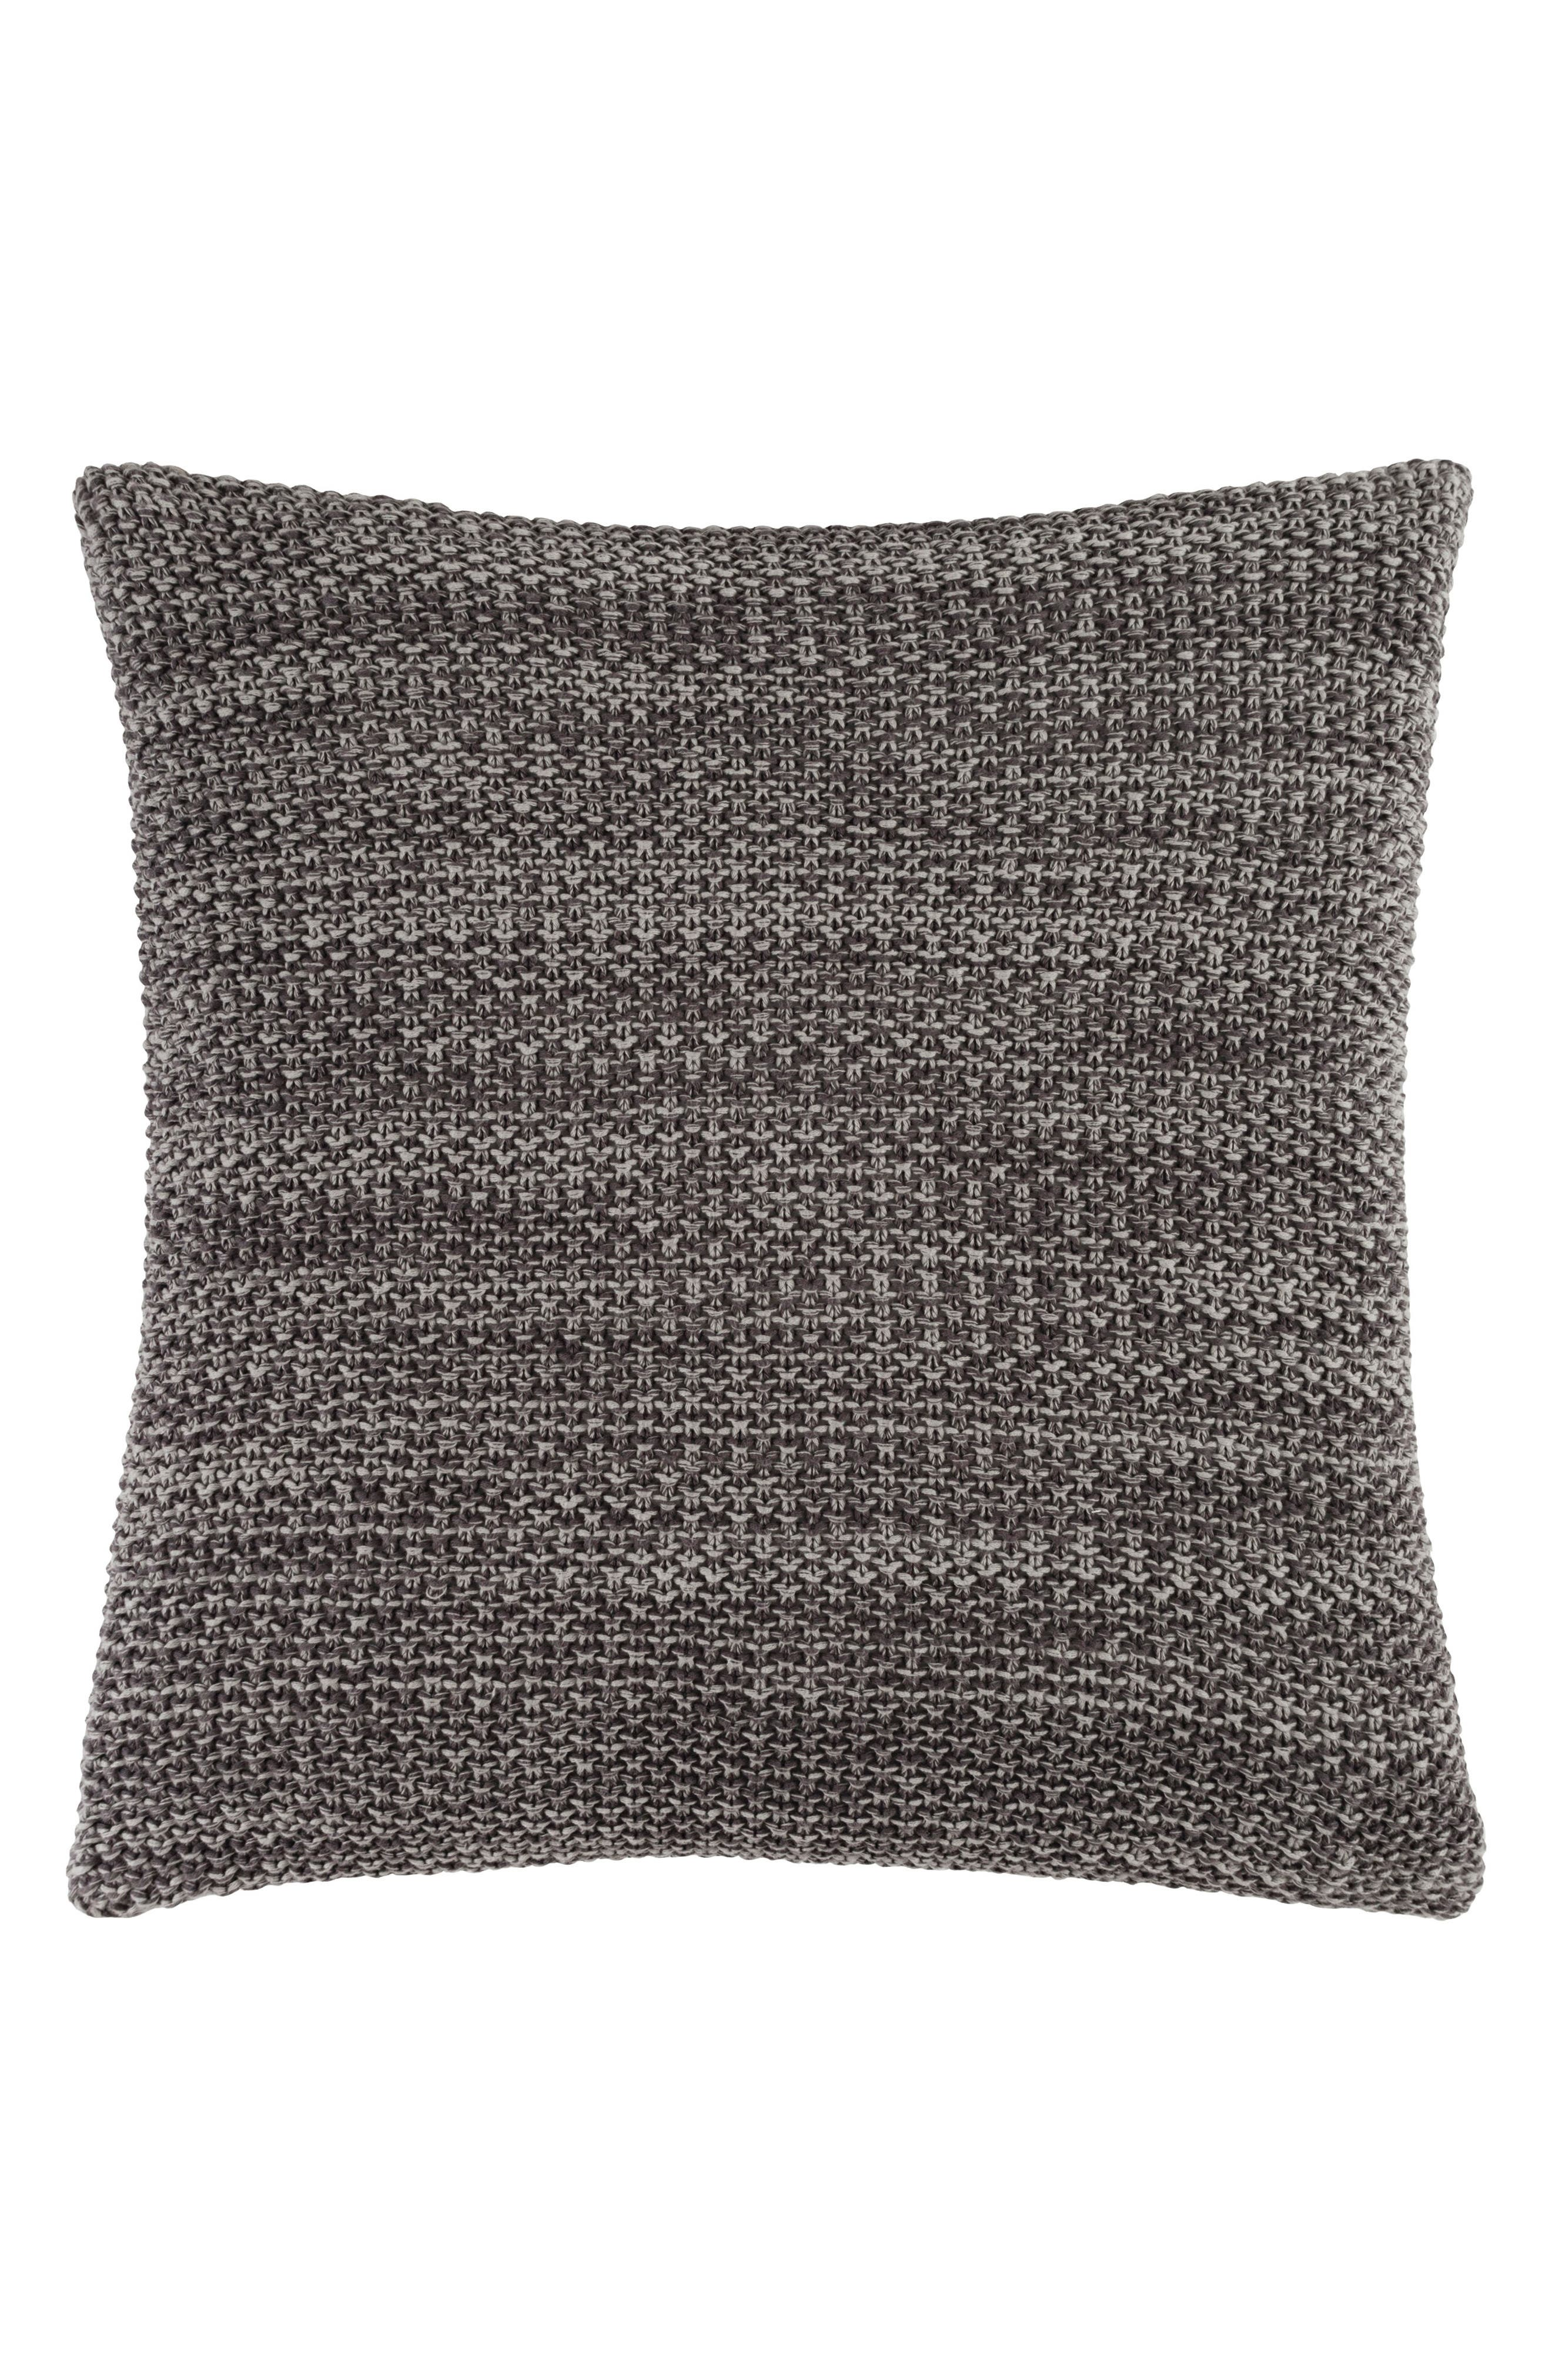 Orino Accent Pillow,                         Main,                         color, GREY/ CHARCOAL